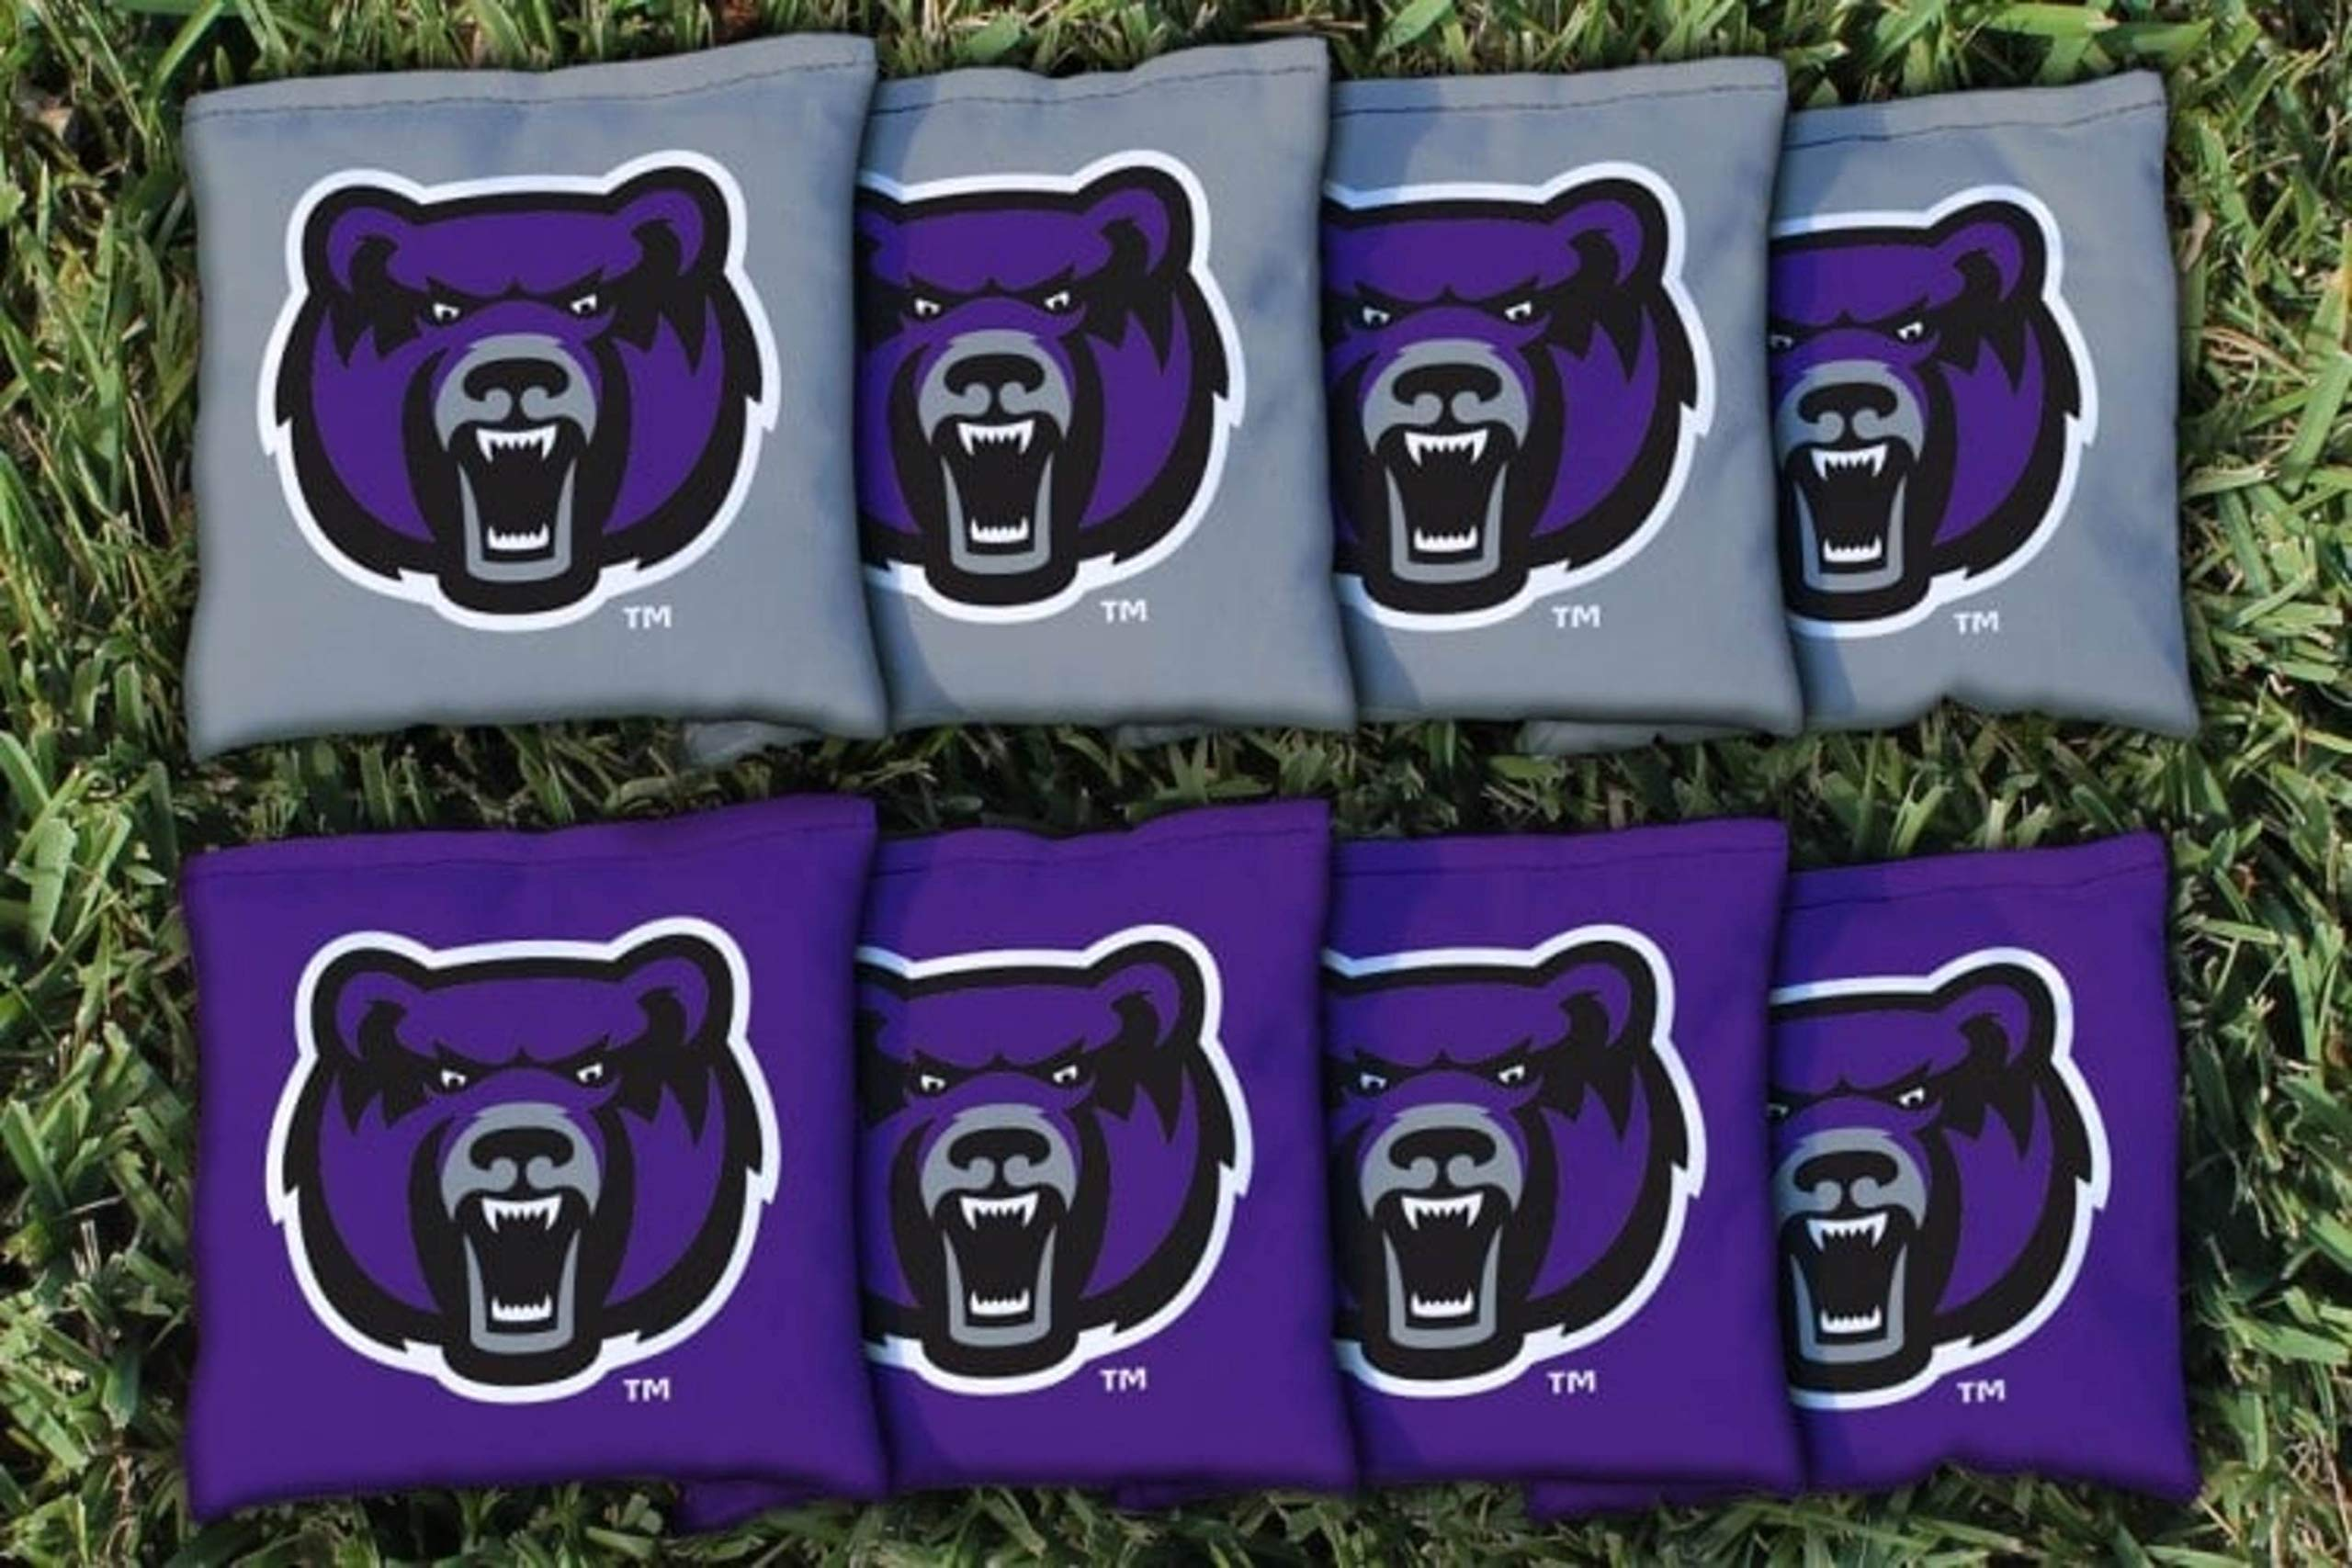 Victory Tailgate NCAA Collegiate Regulation Cornhole Game Bag Set (8 Bags Included, Corn-Filled) - Central Arkansas Bears by Victory Tailgate